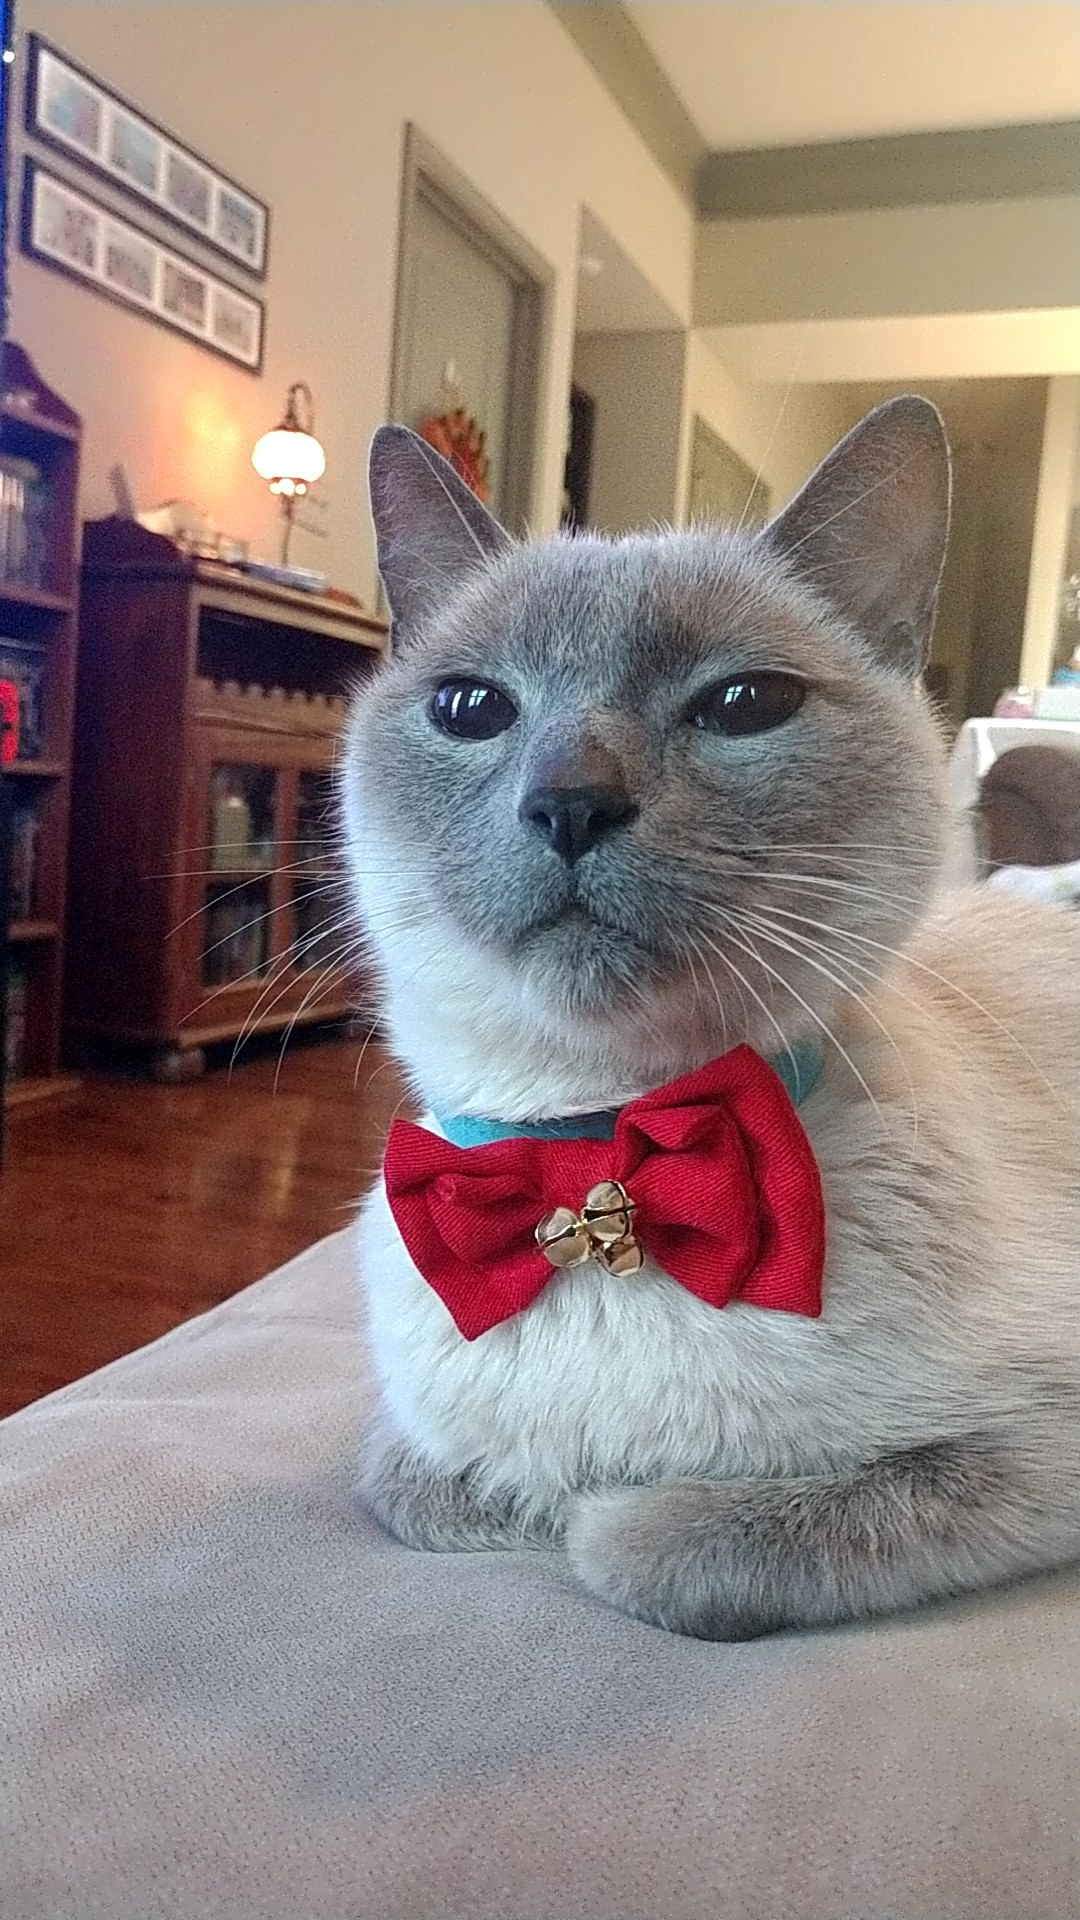 Today was pretty rough. My sweet little siamese was